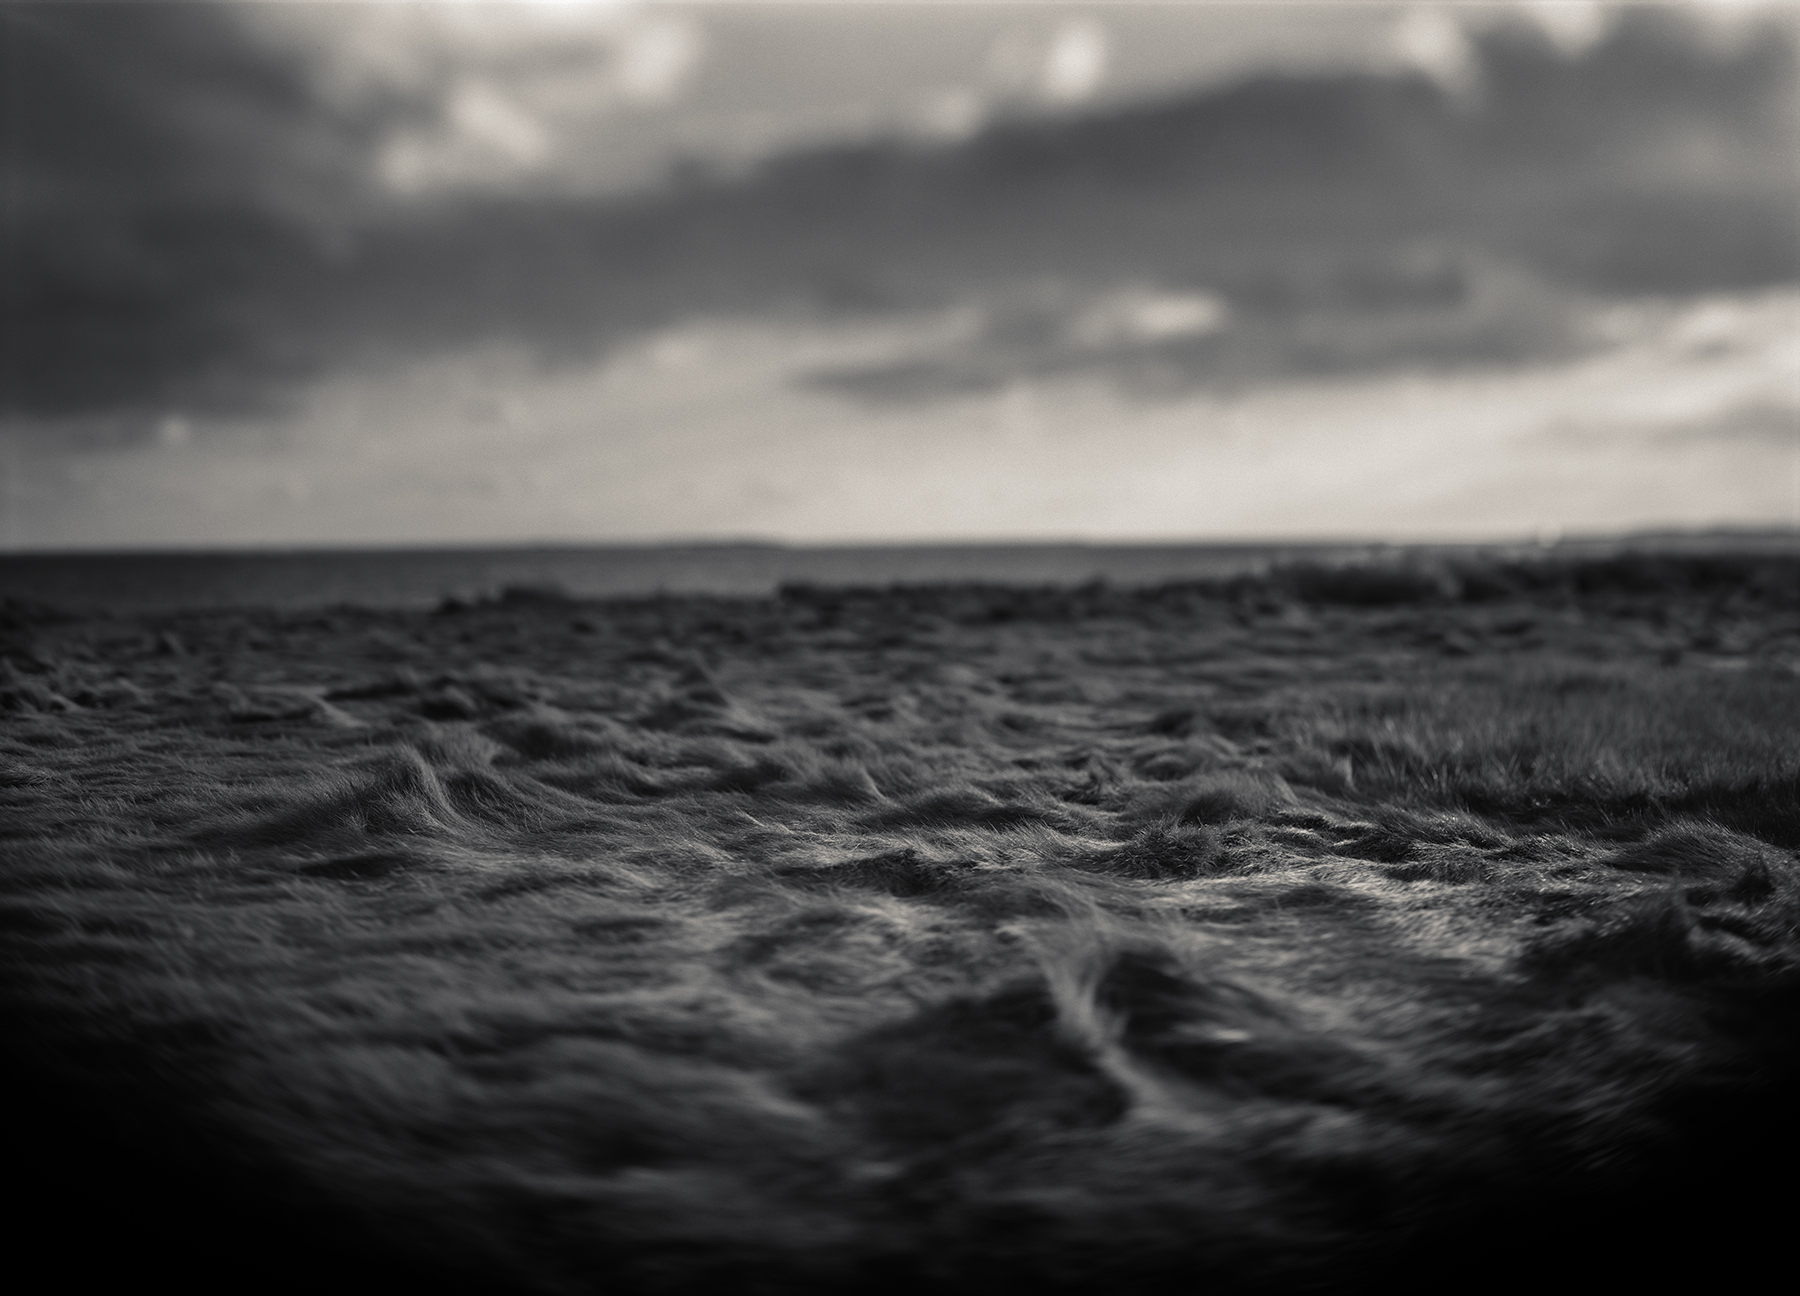 """""""Where There Is No Boat, I Will Put A Boat"""" 8x10 platinum print from Leaving Babylon"""